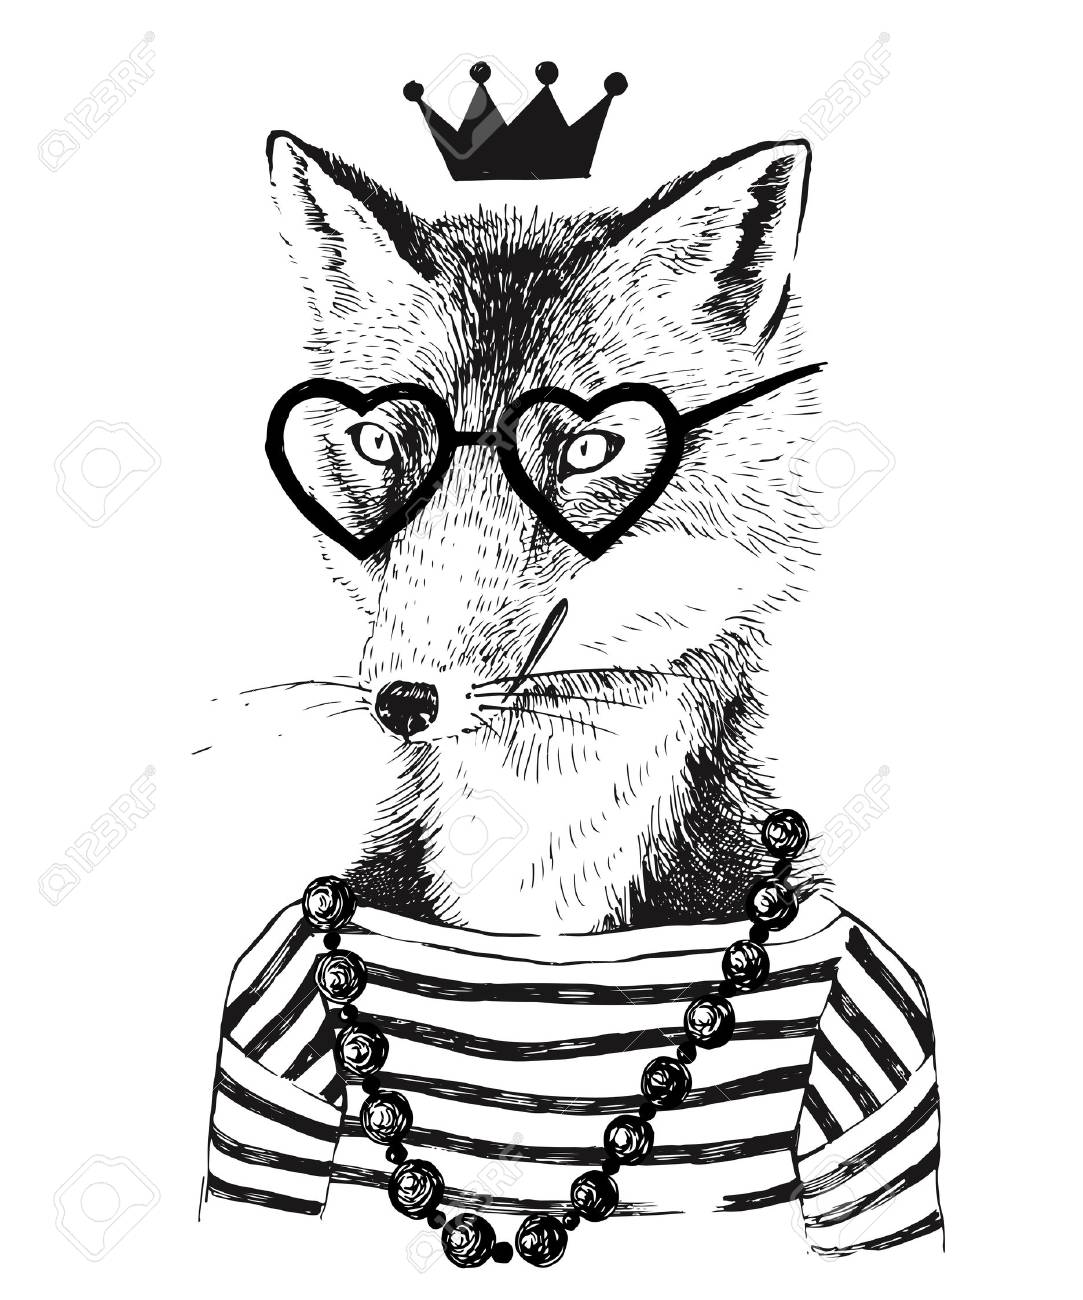 Hand drawn black and white dressed up fennec in hipster style - 64111215